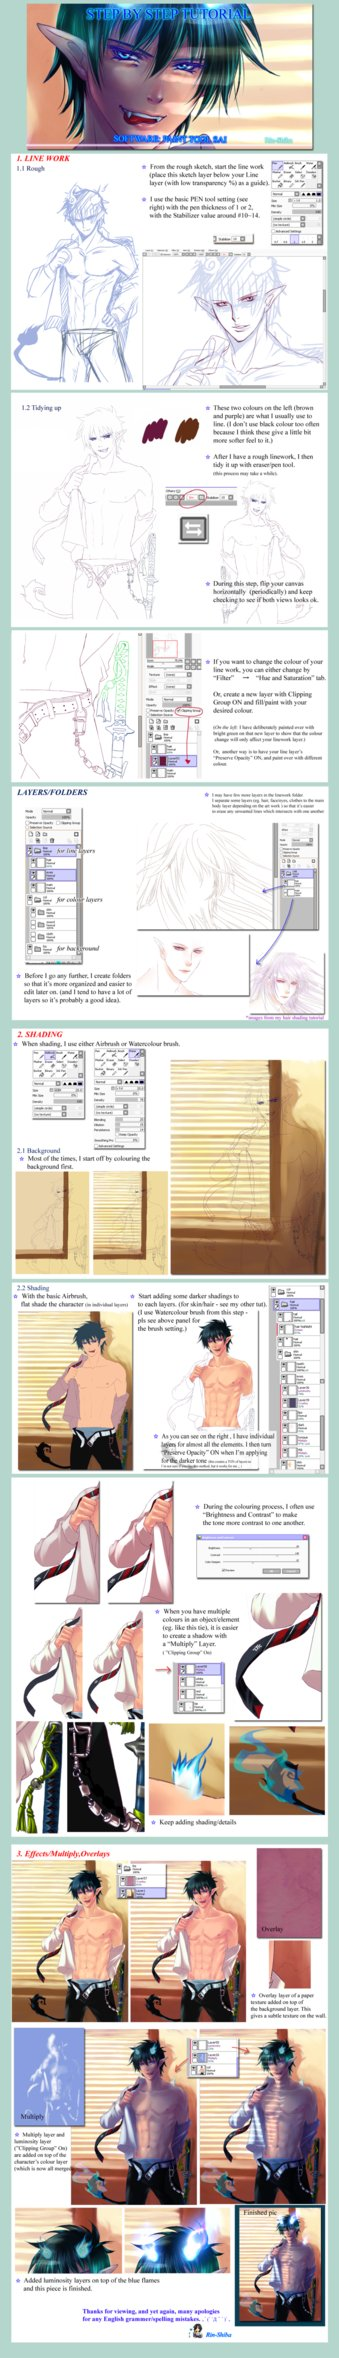 Step by Step Tutorial - My way - Rin Okumura by Rin-Shiba on DeviantArt